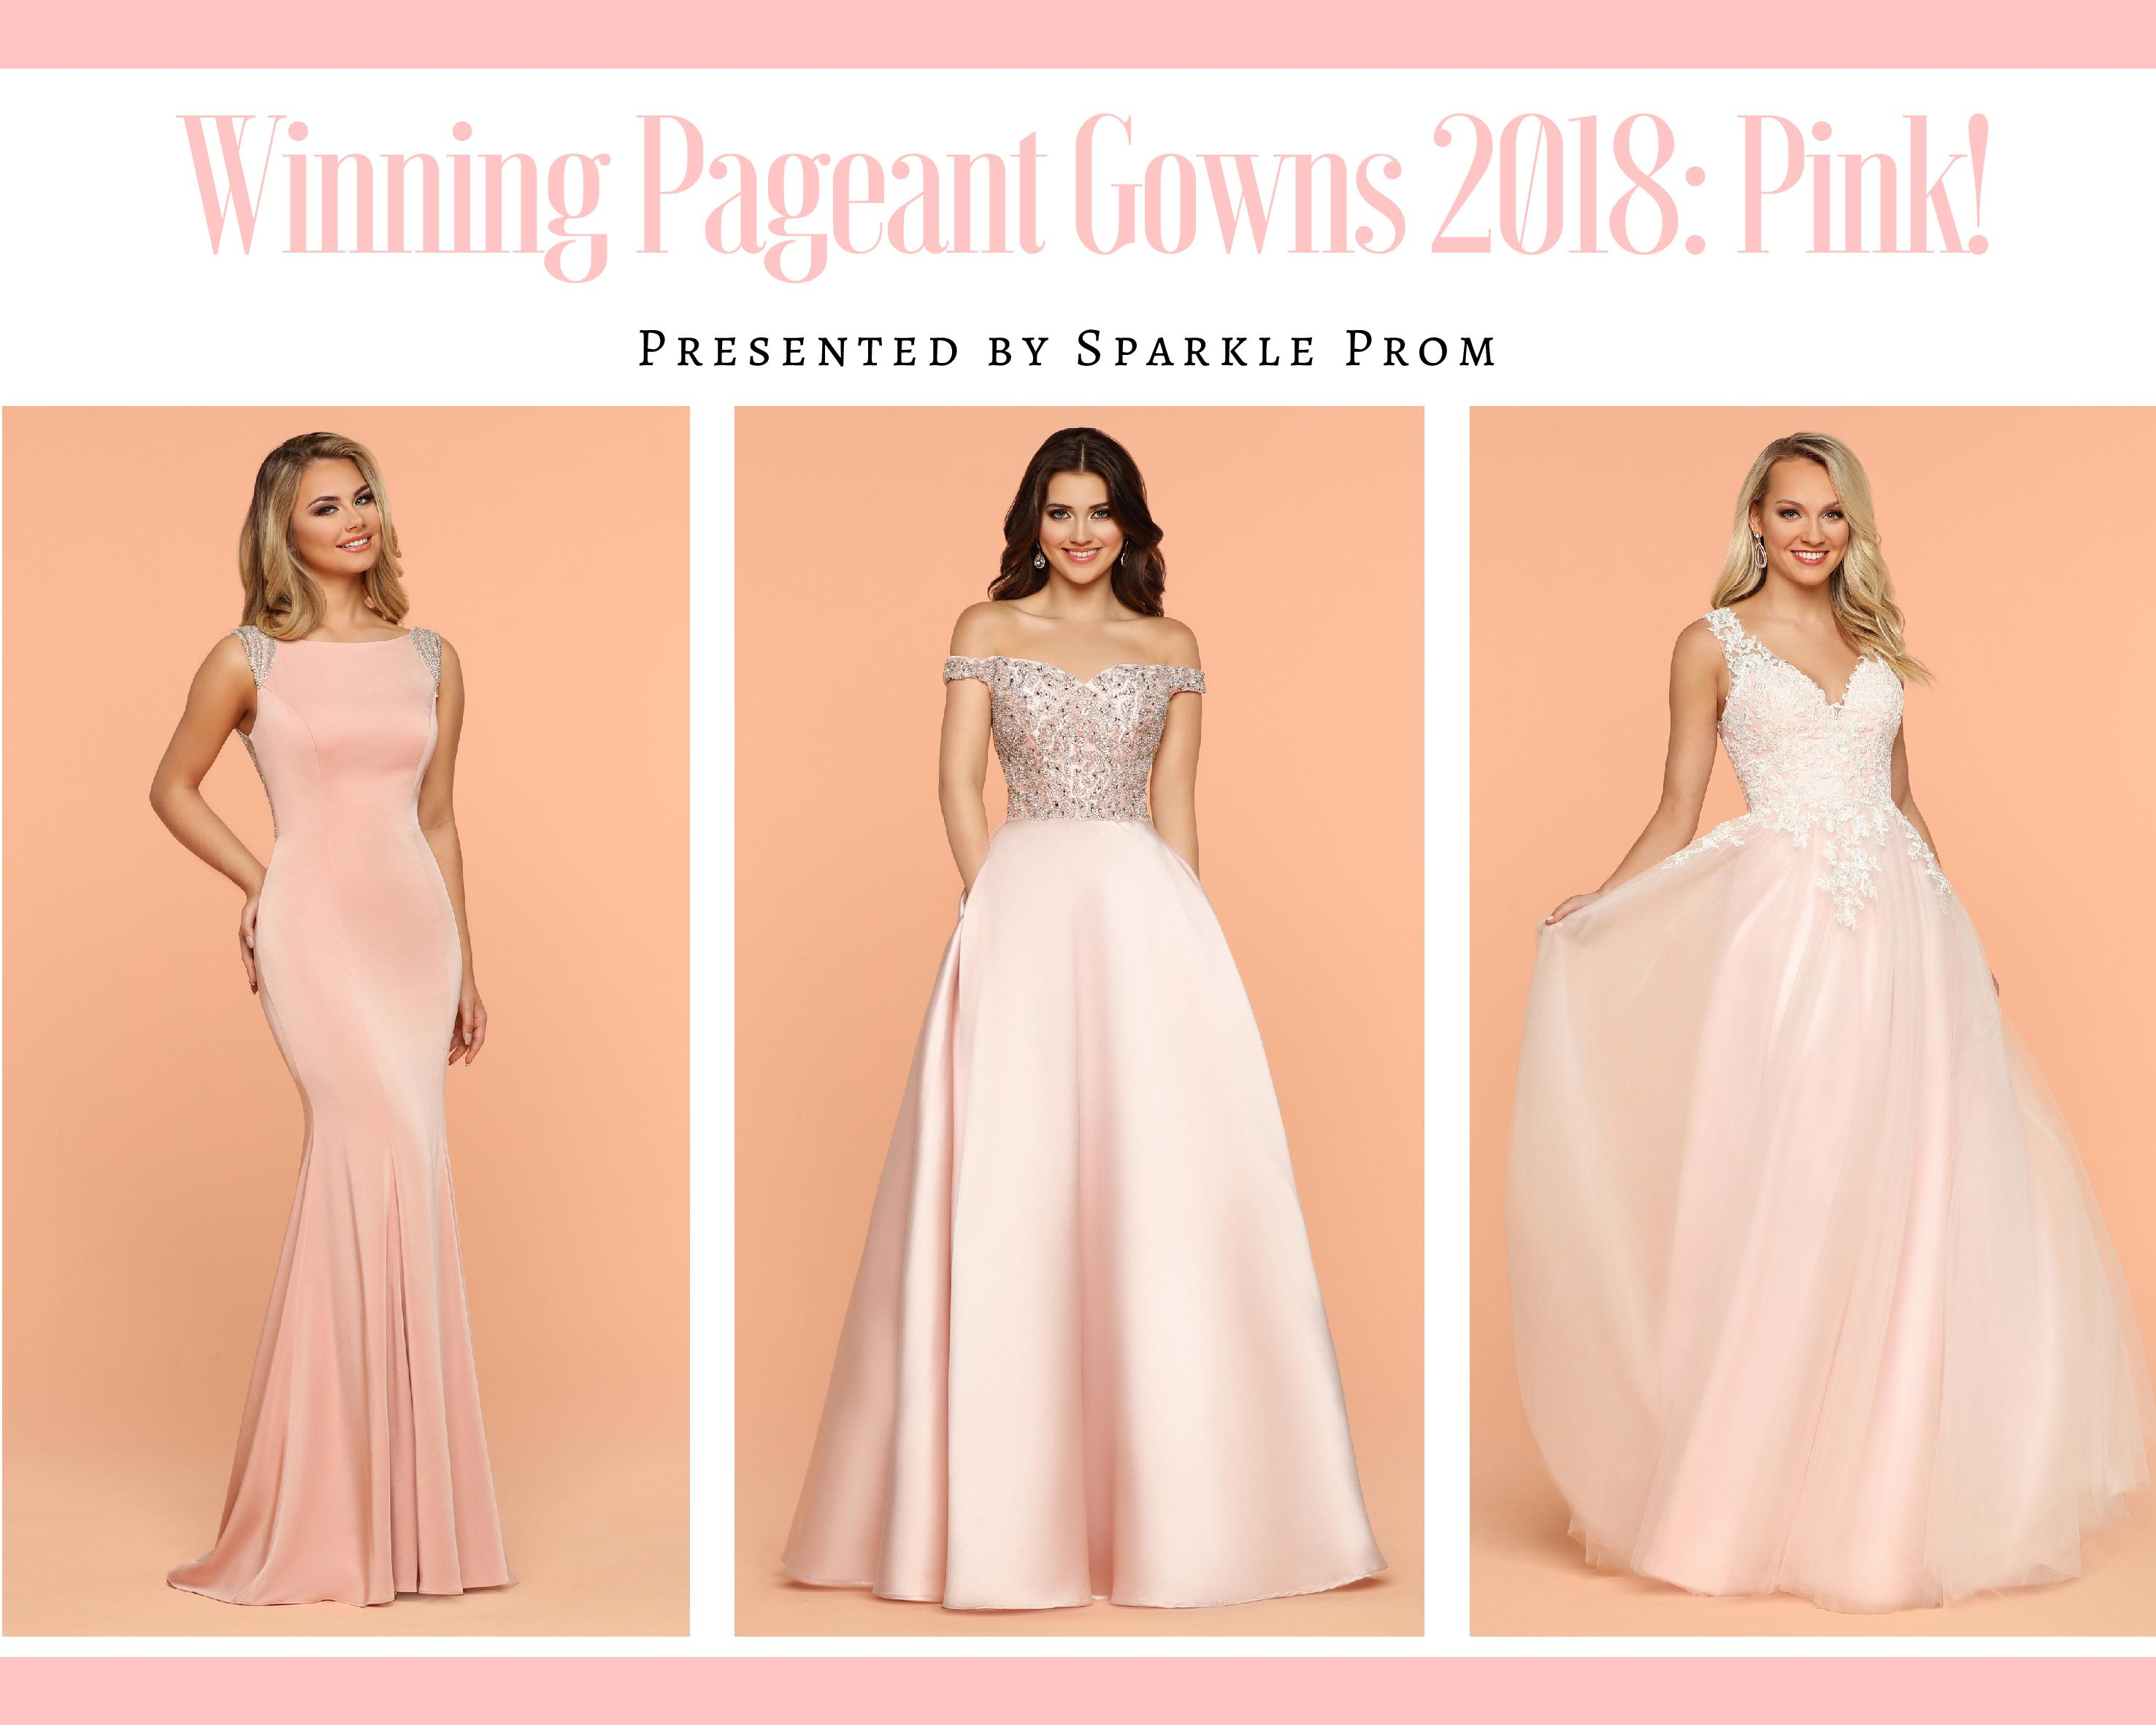 Winning Pageant Gowns 2018: Pink Prom Gowns by Sparkle Prom